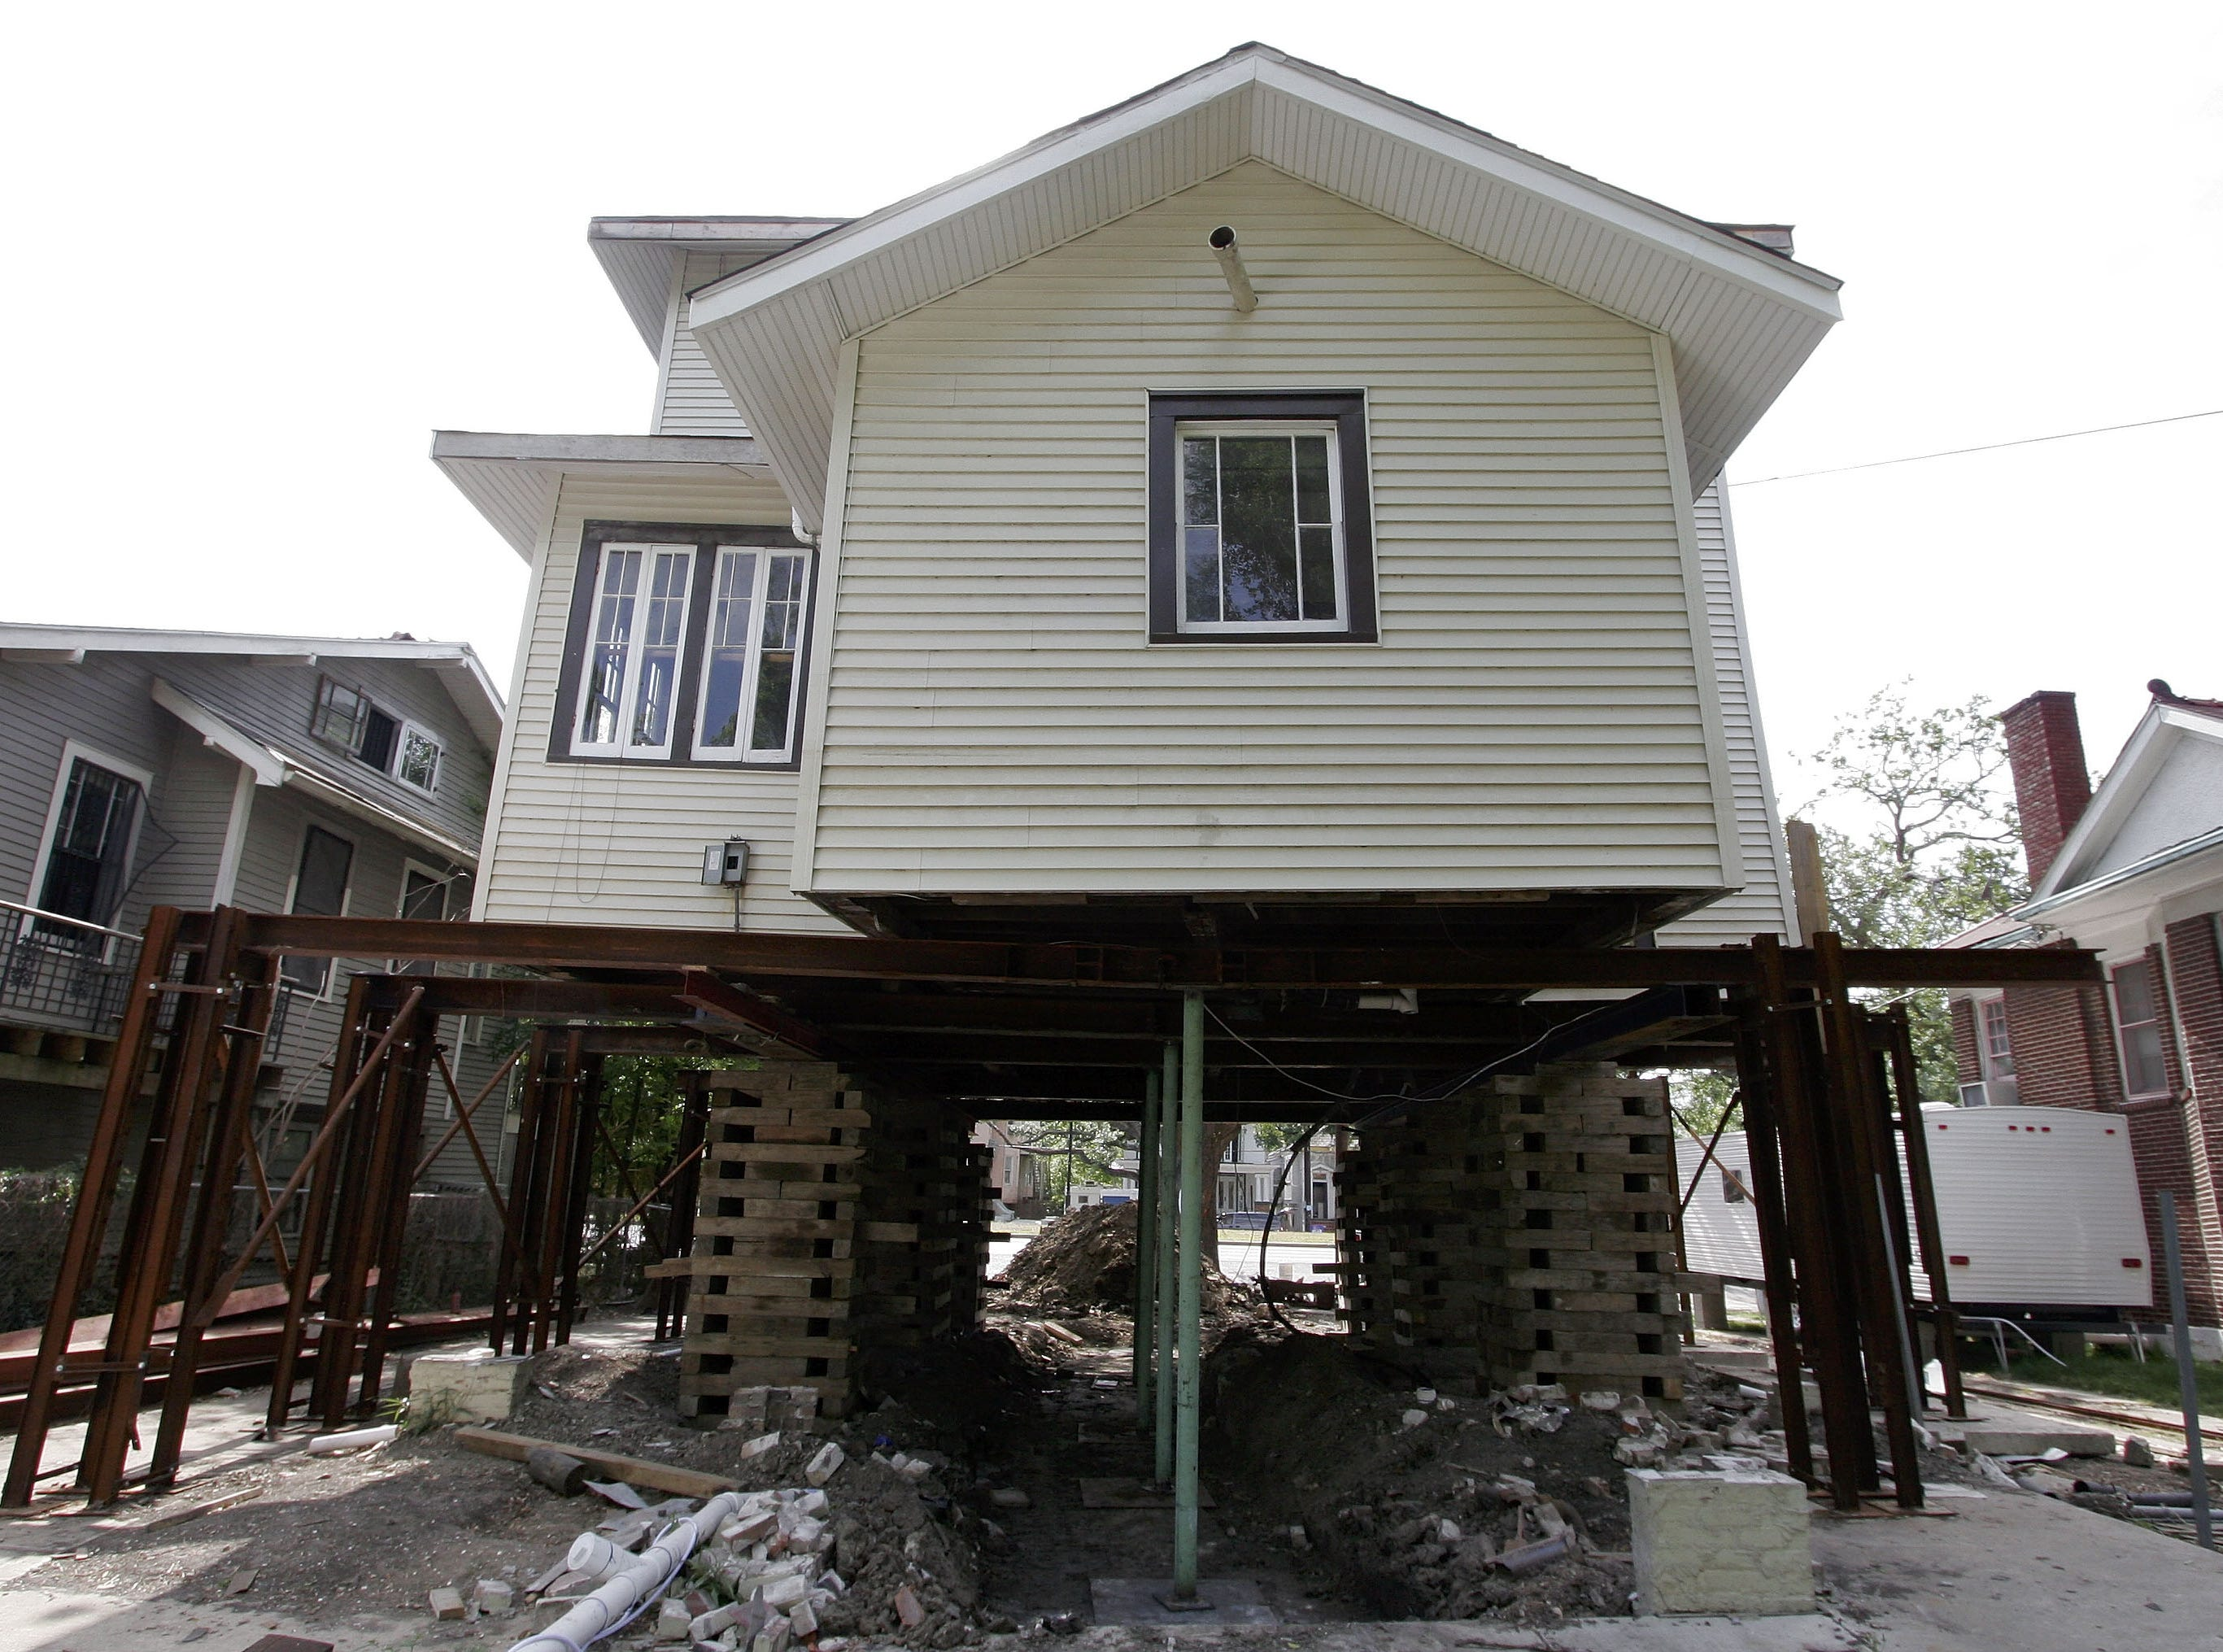 A house on Napoleon Avenue in the Broadmoor area that has been raised an additional 7 feet is seen in New Orleans, Wednesday, April 12, 2006. The house was 3 feet above the ground and still sustained damage in the aftermath of Hurricane Katrina. After the work is done, the house will be over 10 feet above the ground.